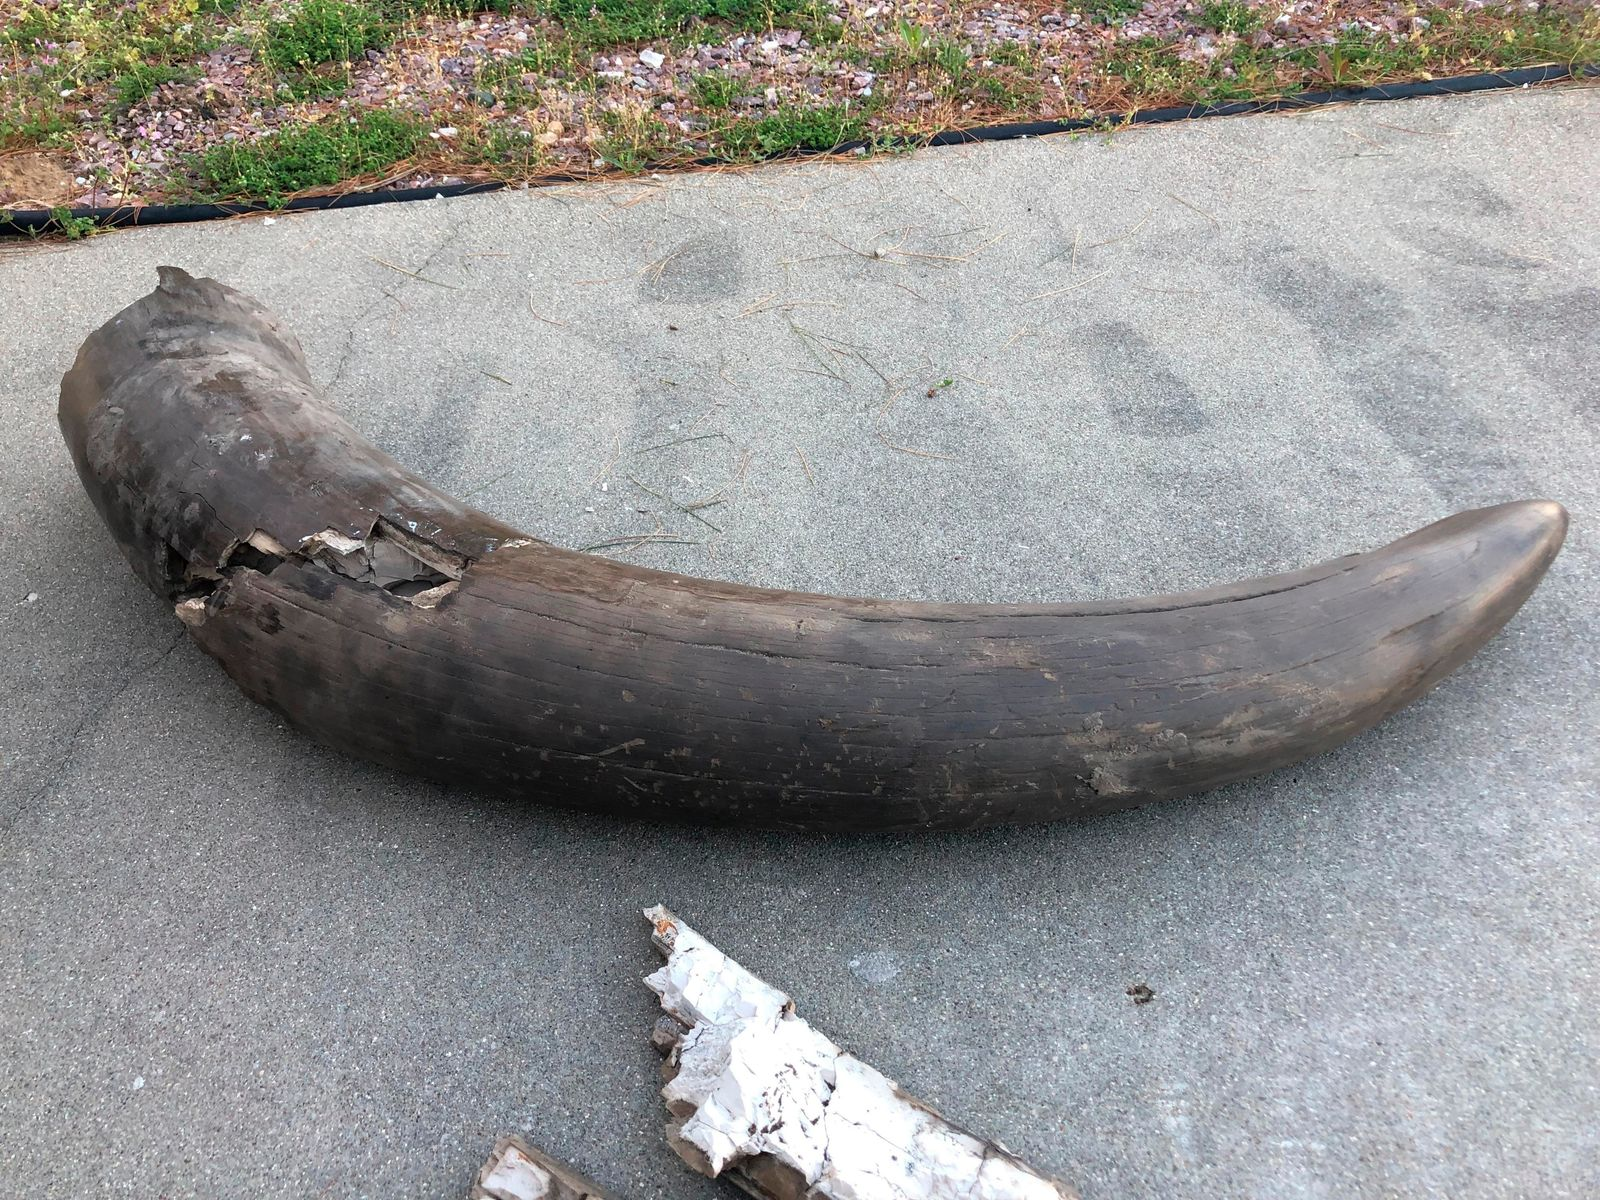 The tusk of a mastodon found on property owned by Joe Schepman and his family is shown on April 15, 2019  in Seymour, Ind. Atlas Excavating recently discovered the remains of a mastodon on property owned by Schepman.  The remains include the majority of a tusk, part of a jawbone with teeth, two upper leg bones, a vertebrae, a joint and part of the skull. The tusk was split into two pieces and together made up about a third of the tusk.  (Jordan Richart/The Tribune via AP)